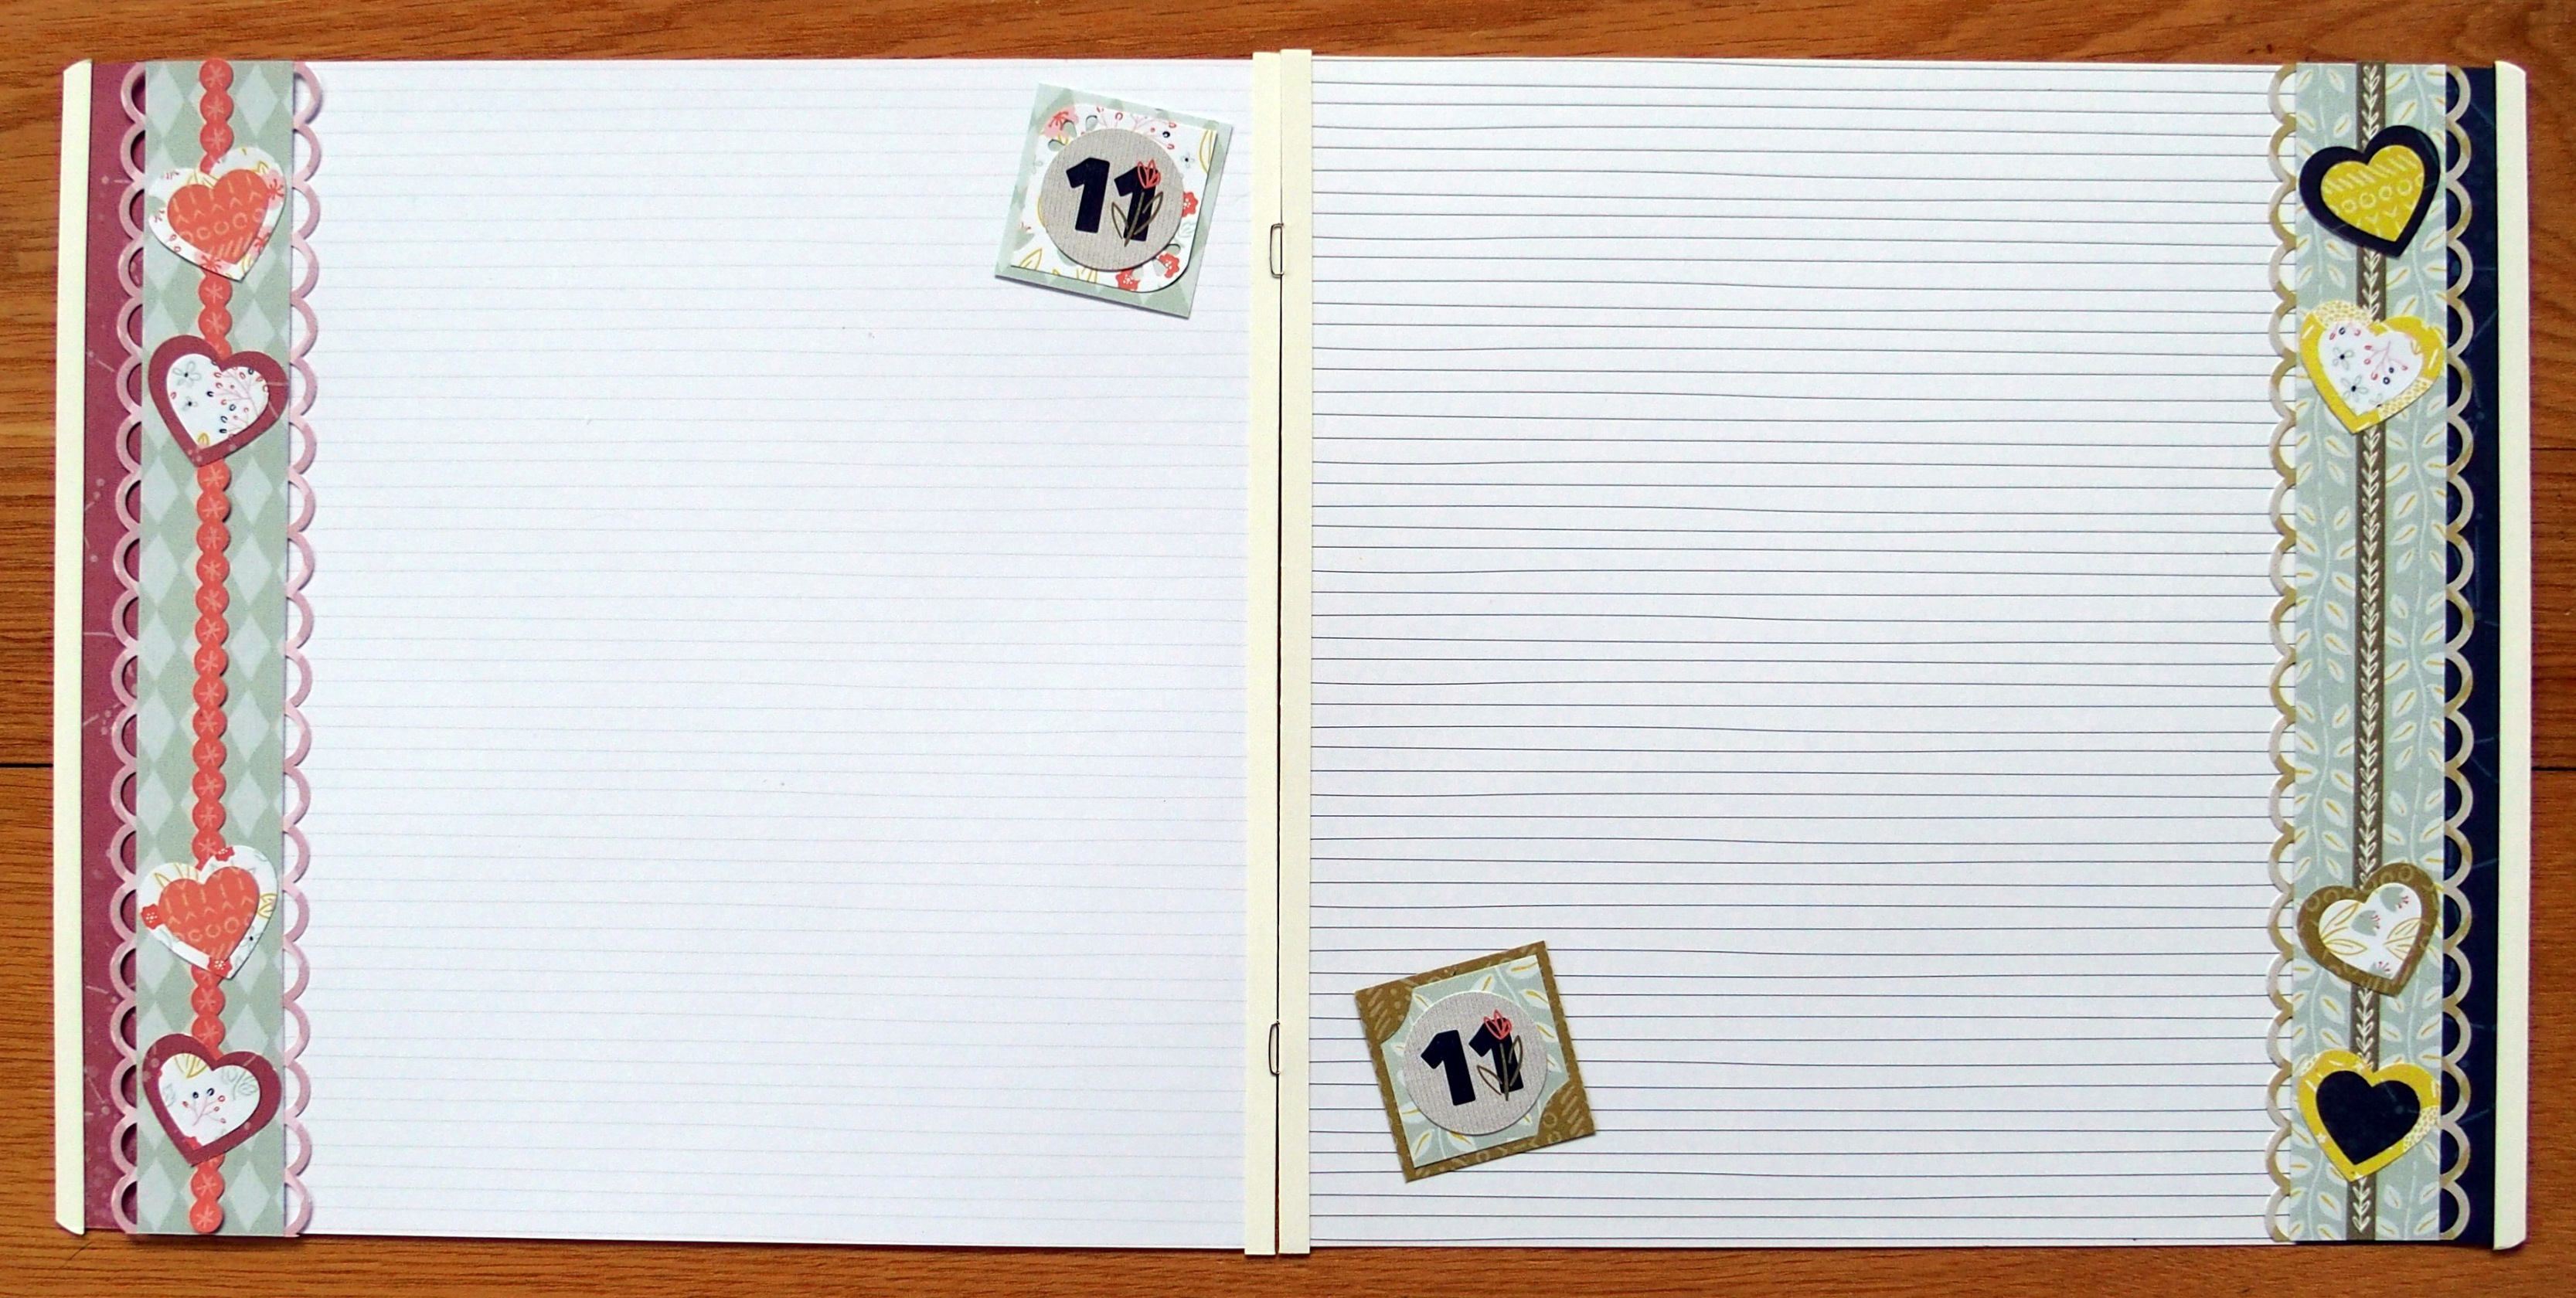 Storytime-Collection-Monthly-Borders-Creative-Memories-24